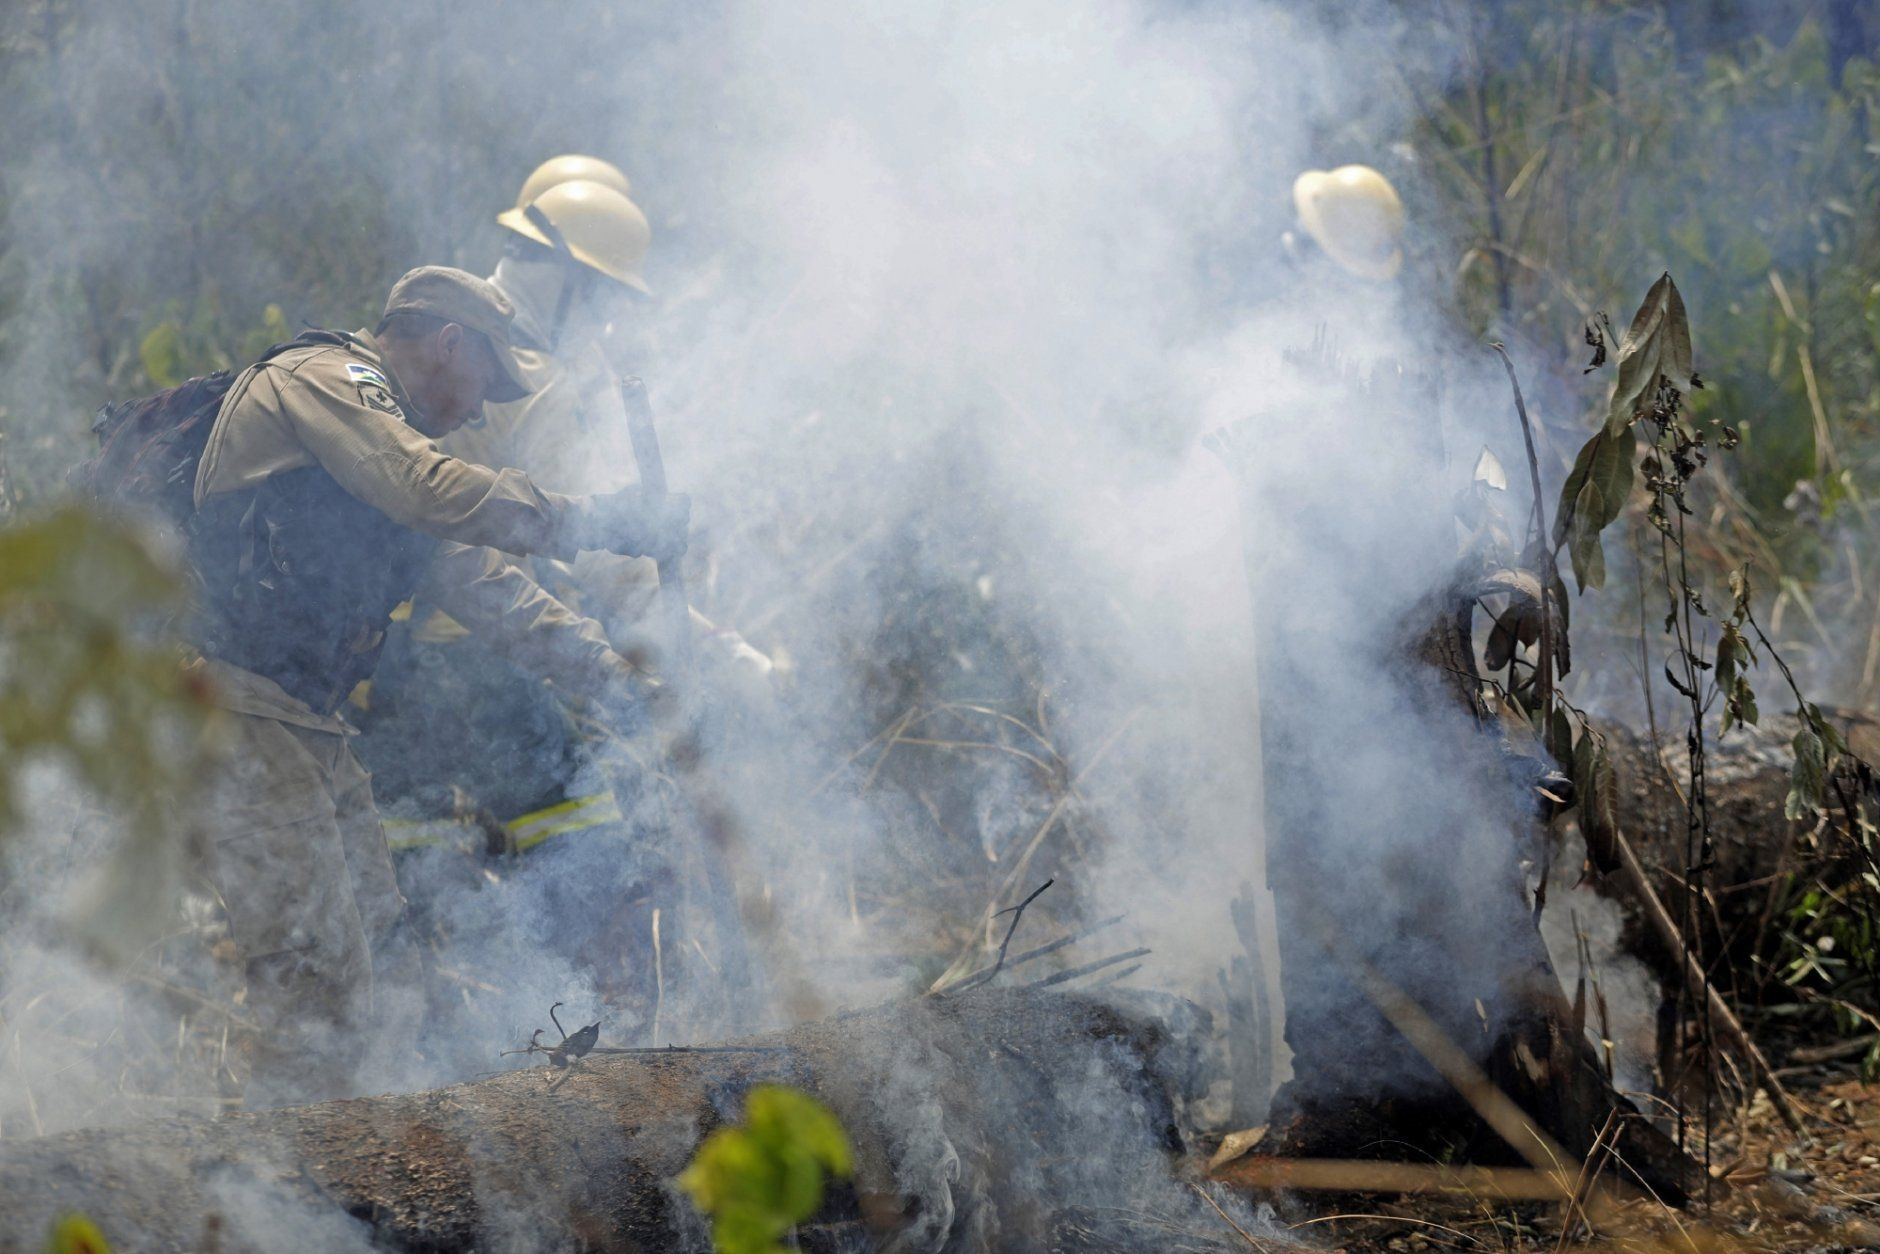 Firefighters work to put out forest fires along the road to Jacunda National Forest near the city of Porto Velho in Rondonia state, in the Vila Nova Samuel region, part of Brazil's Amazon, Sunday, Aug. 25, 2019. Leaders of the Group of Seven nations said Sunday they were preparing to help Brazil fight the fires burning across the Amazon rainforest and repair the damage even as tens of thousands of soldiers were being deployed to fight the blazes that have caused global alarm. (AP Photo/Eraldo Peres)